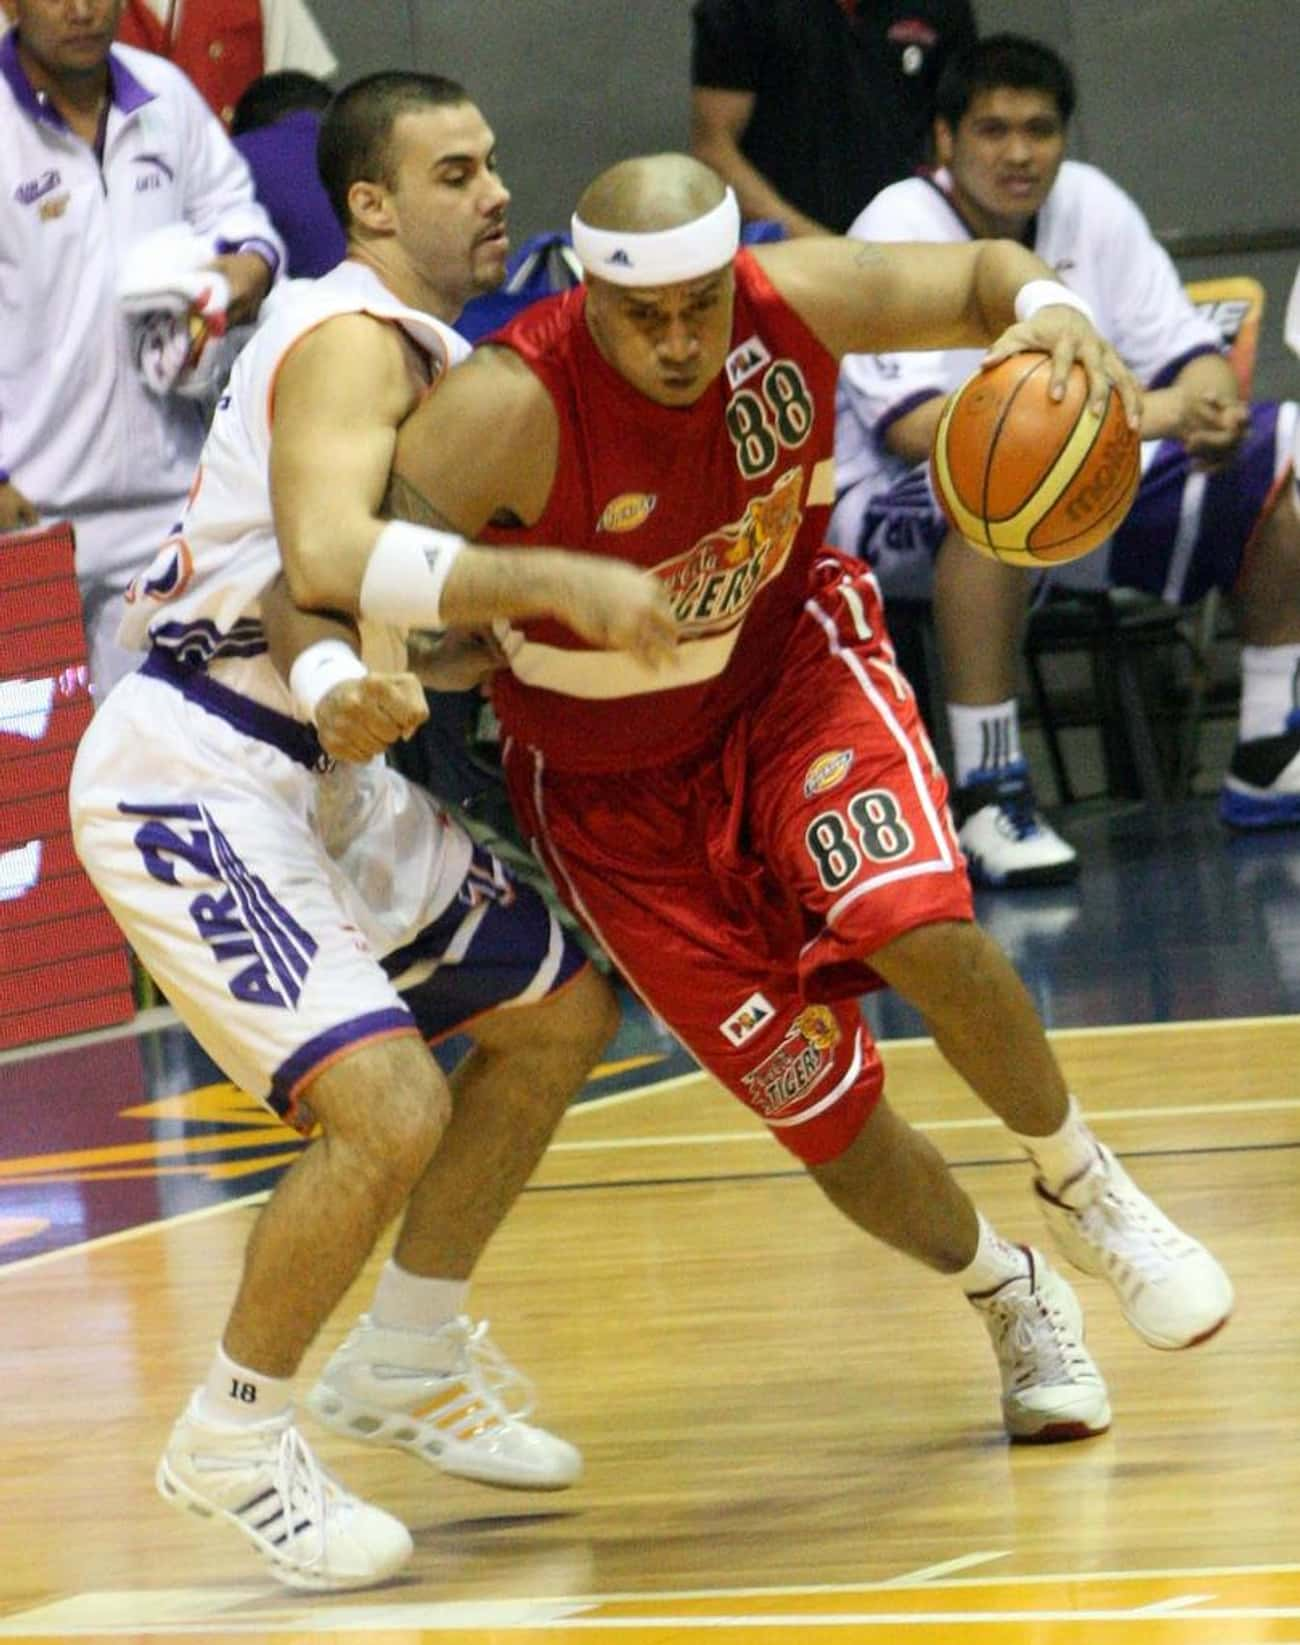 Asi Taulava is listed (or ranked) 2 on the list Famous Male Athletes from Tonga